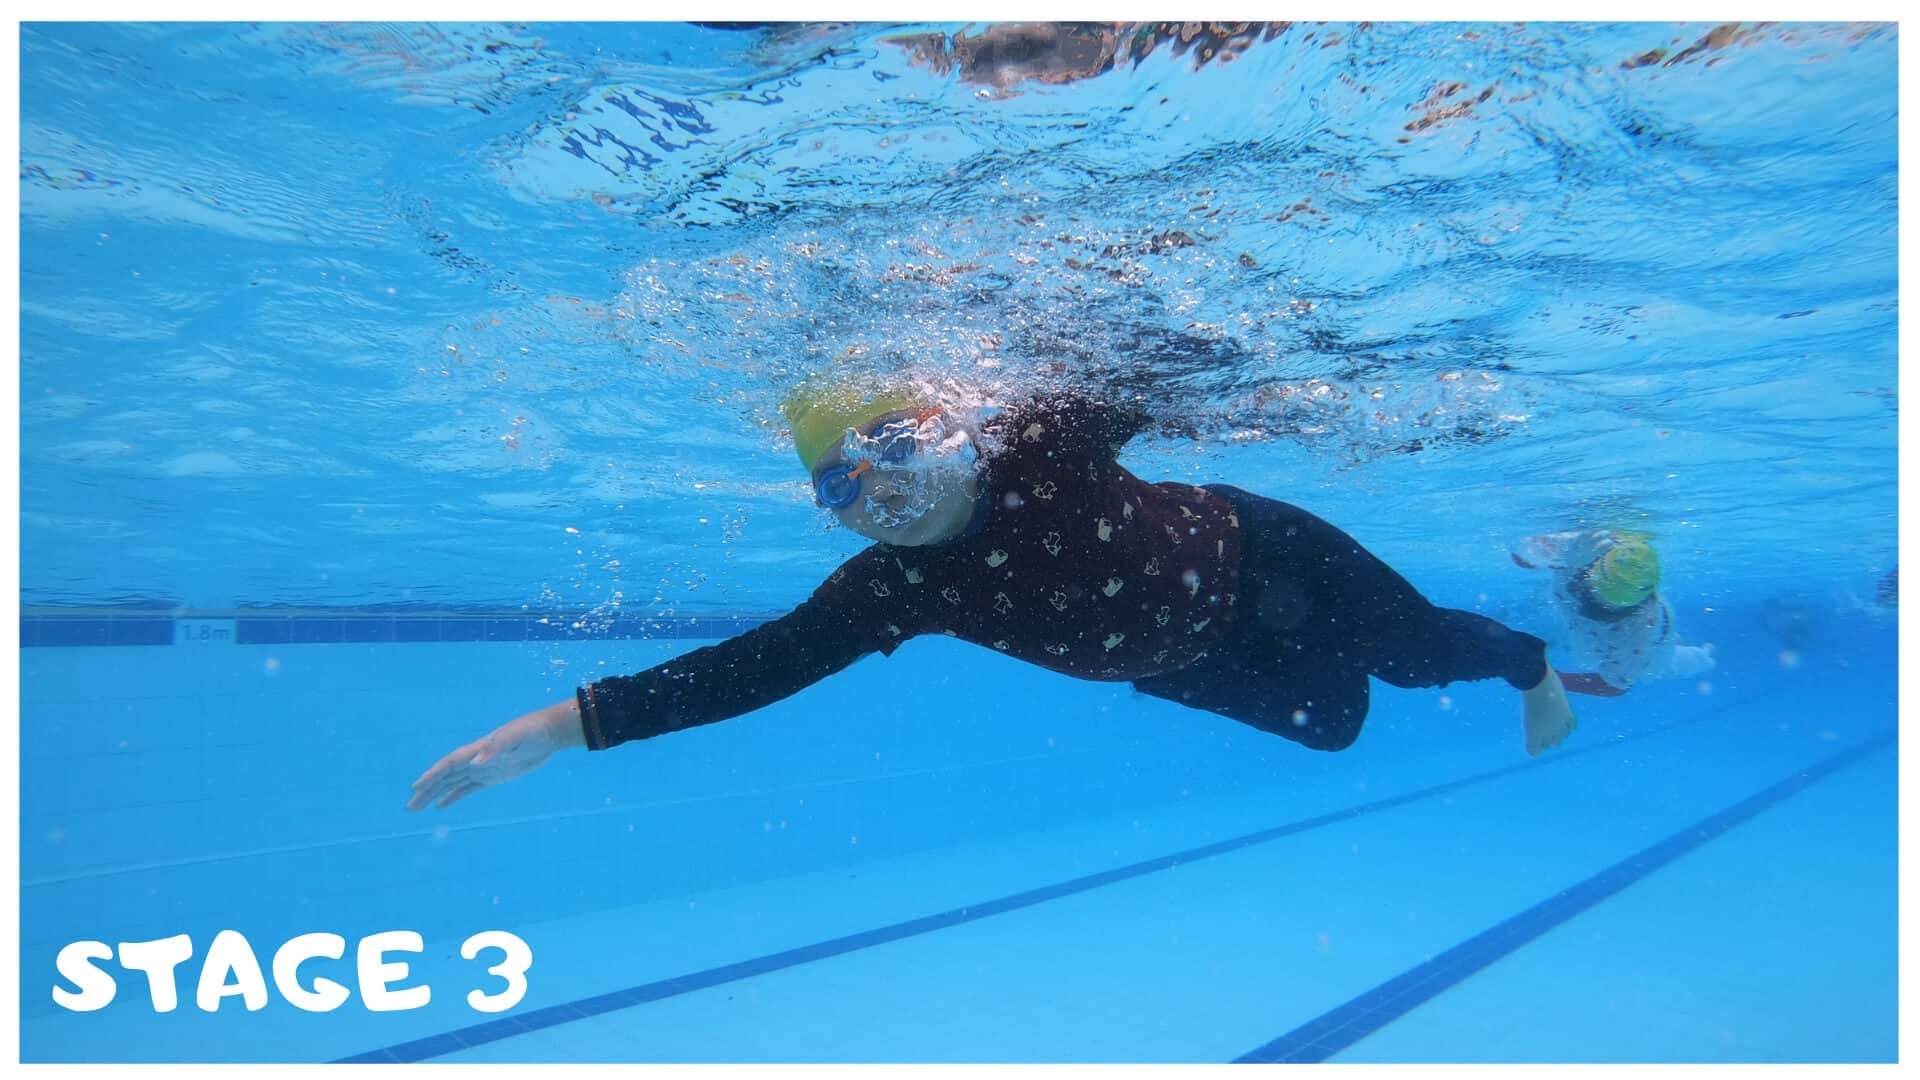 Stage 3 children swimming lessons singapore